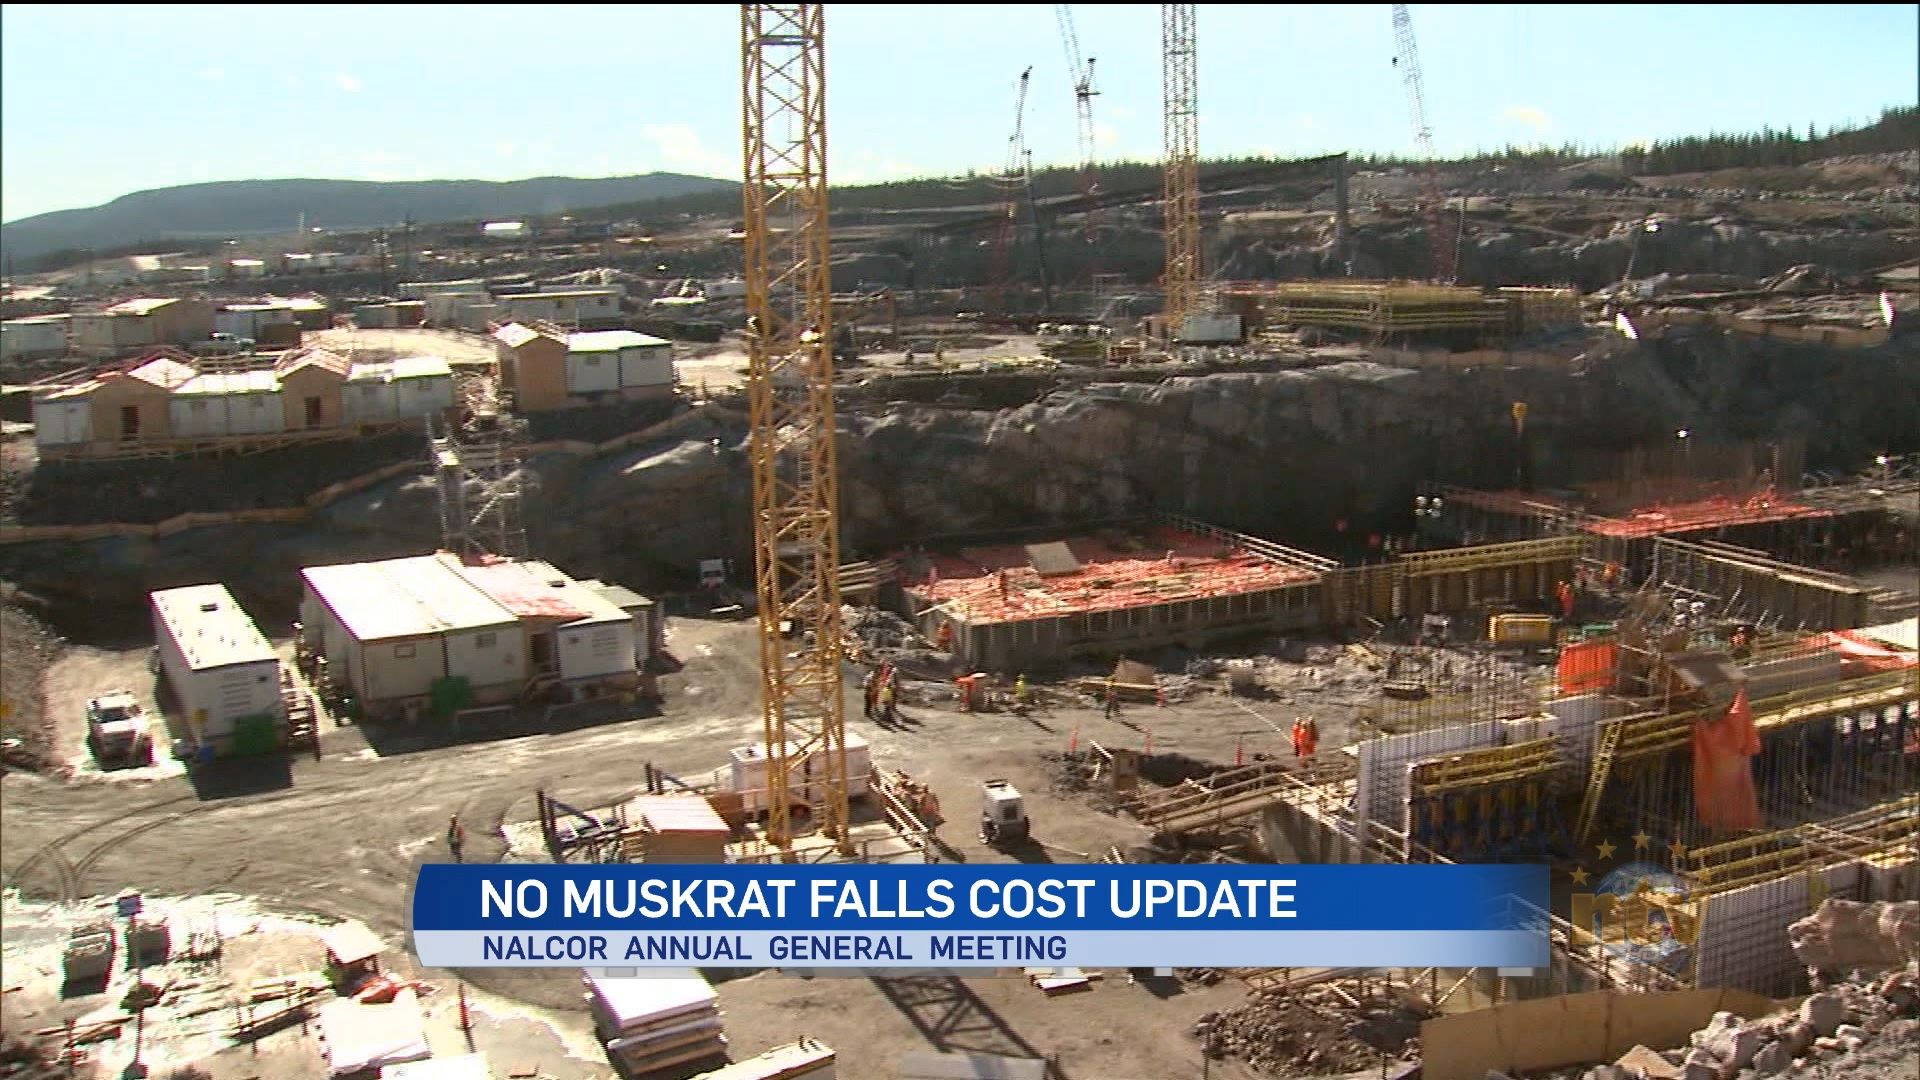 No changes to Muskrat Falls cost and schedule announced at Nalcor AGM